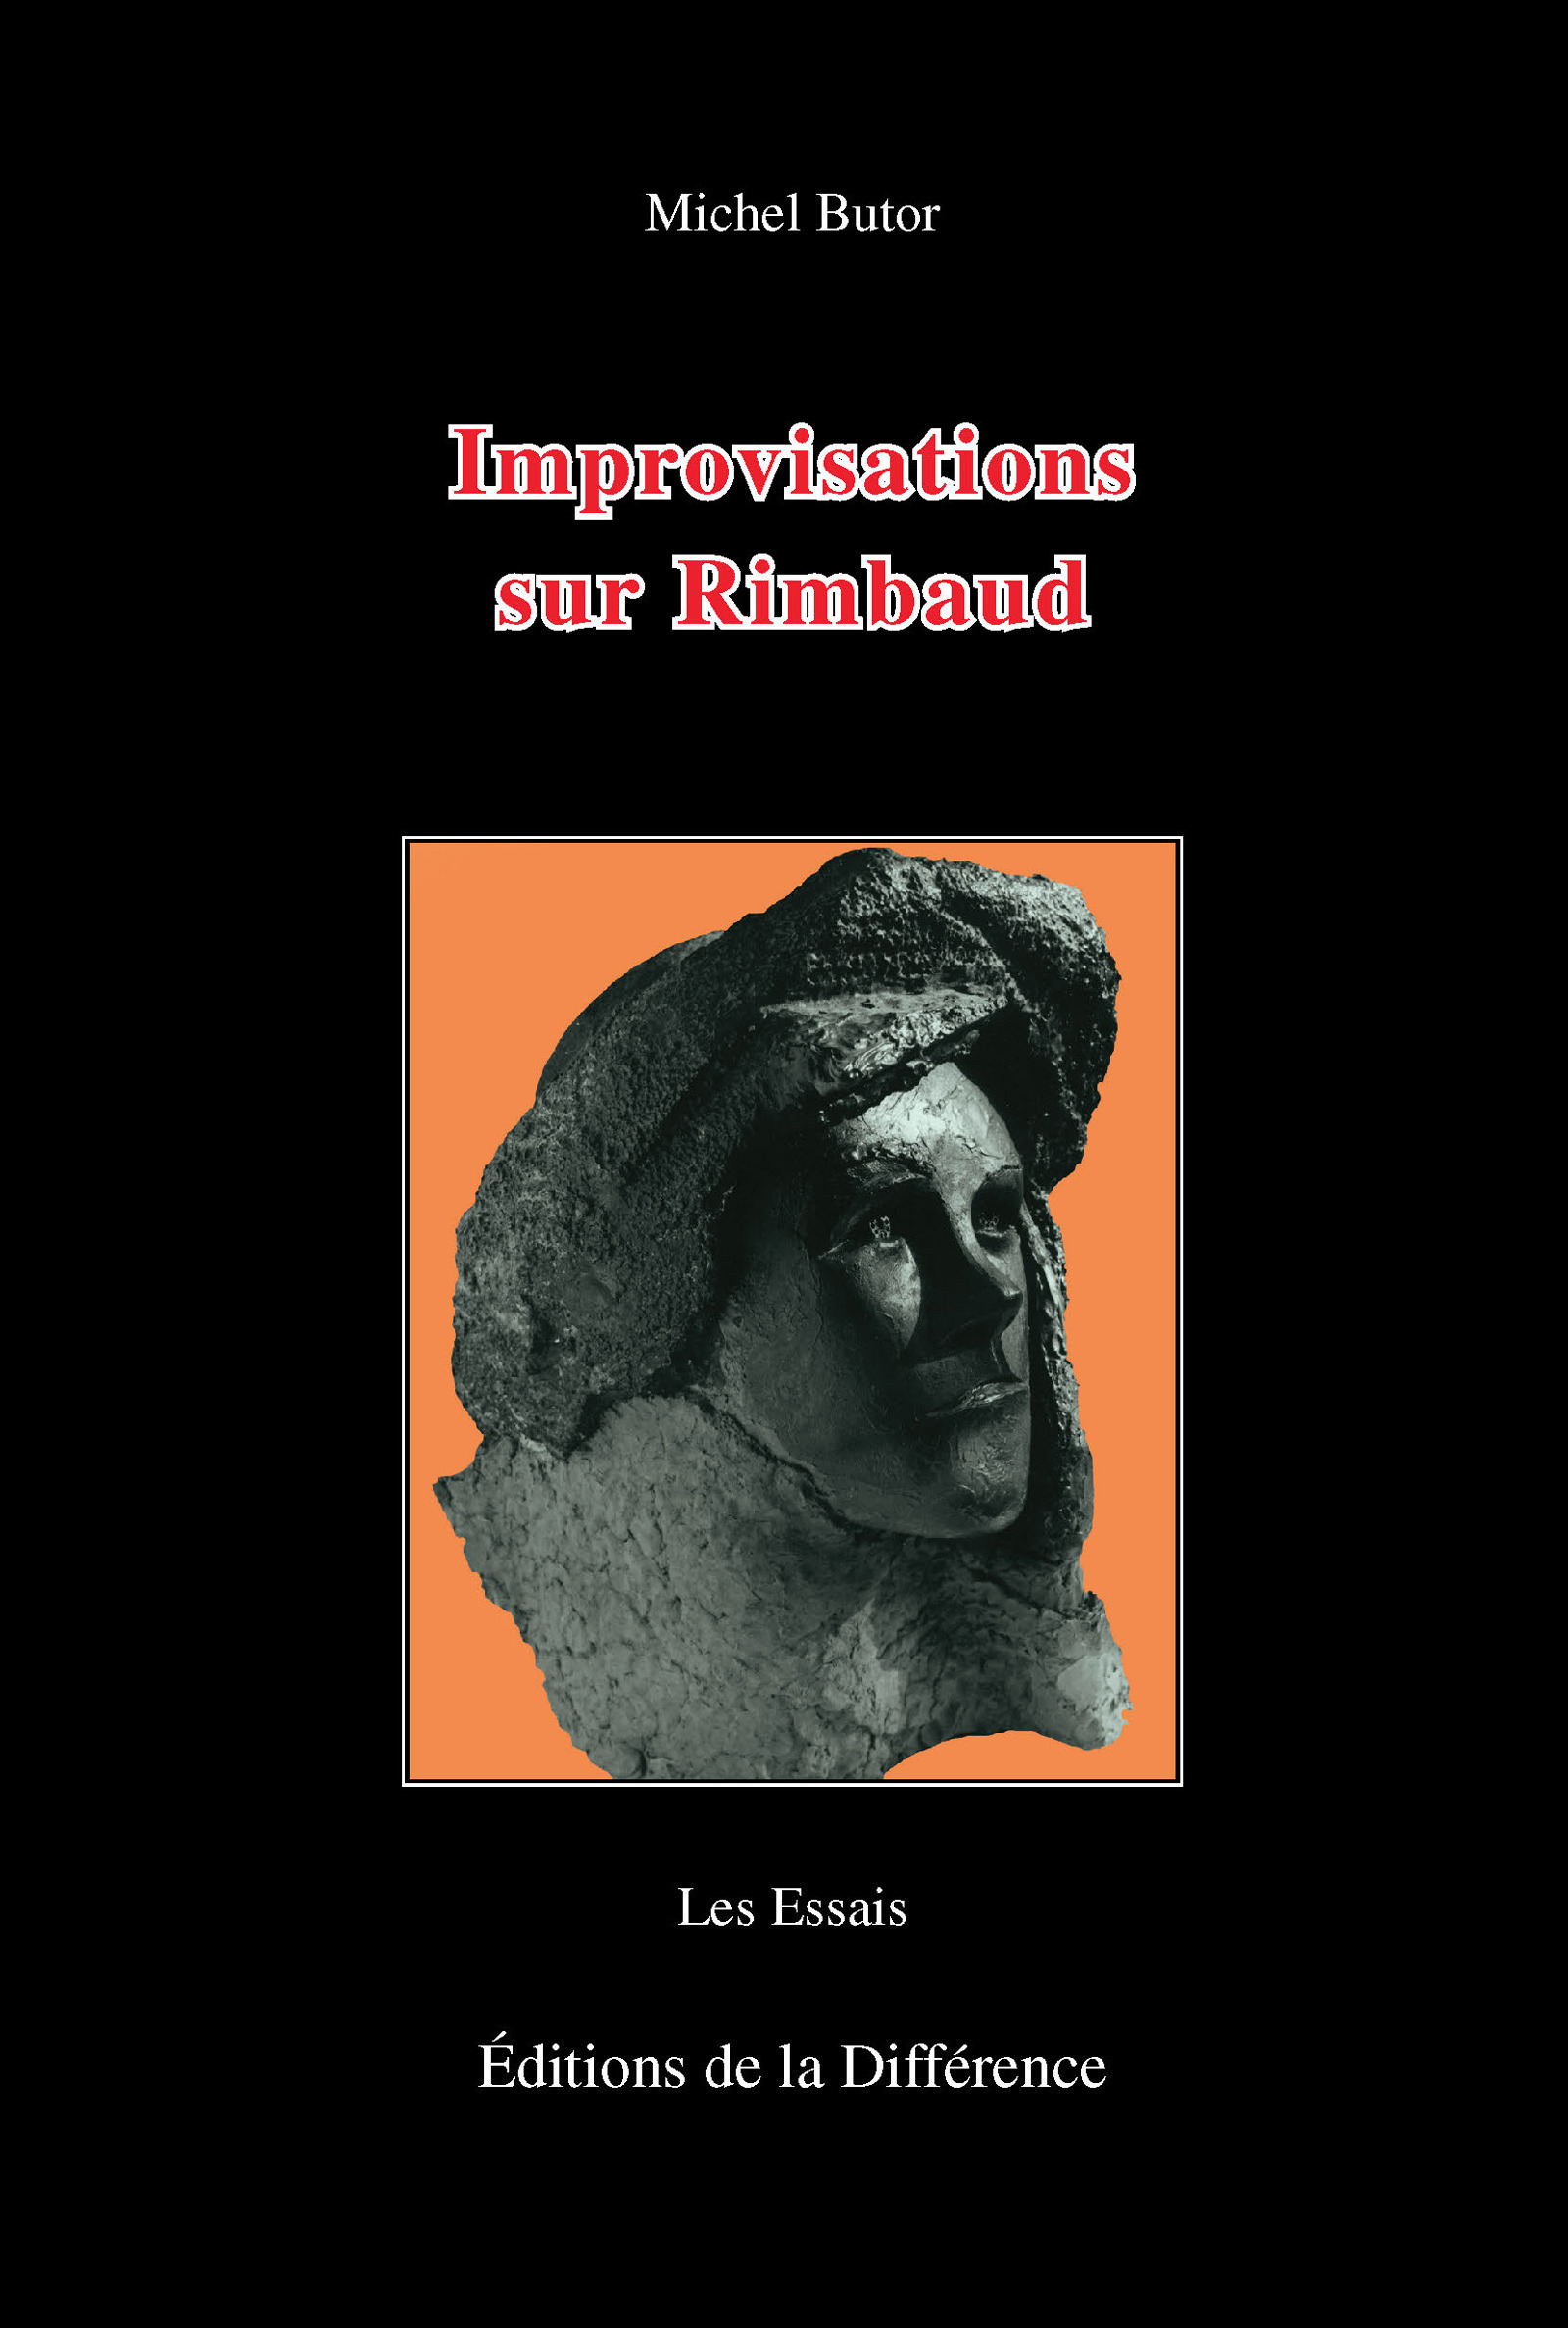 Improvisations sur Rimbaud